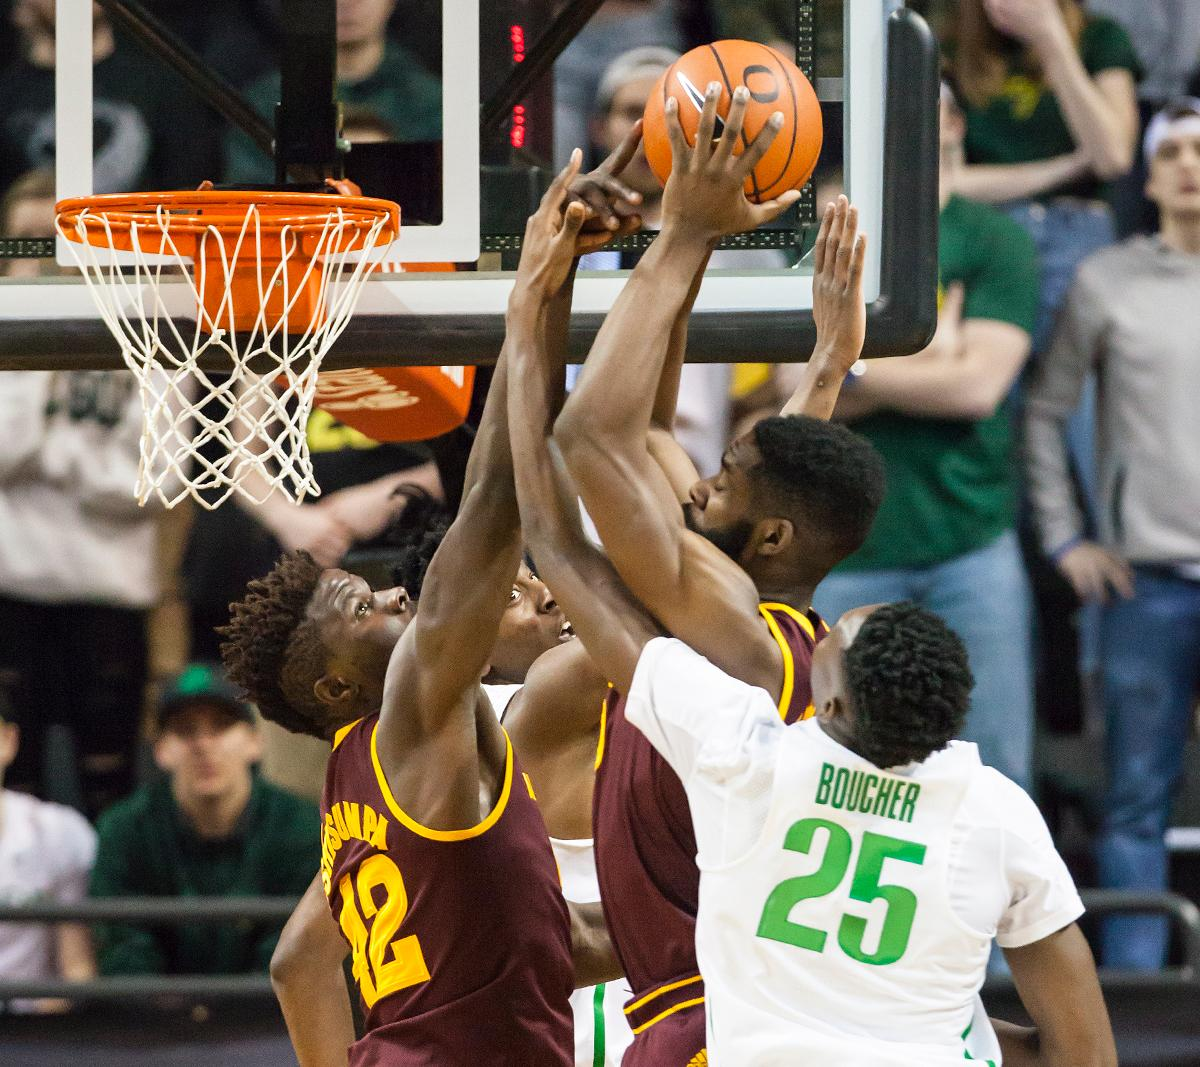 Oregon forward Chis Boucher (#25) leaps to block a shot by Arizona State forward Obinna Oleka (#5). The Oregon Ducks defeated the Arizona State Sun Devils 71 to 70. Photo by Ben Lonergan, Oregon News Lab